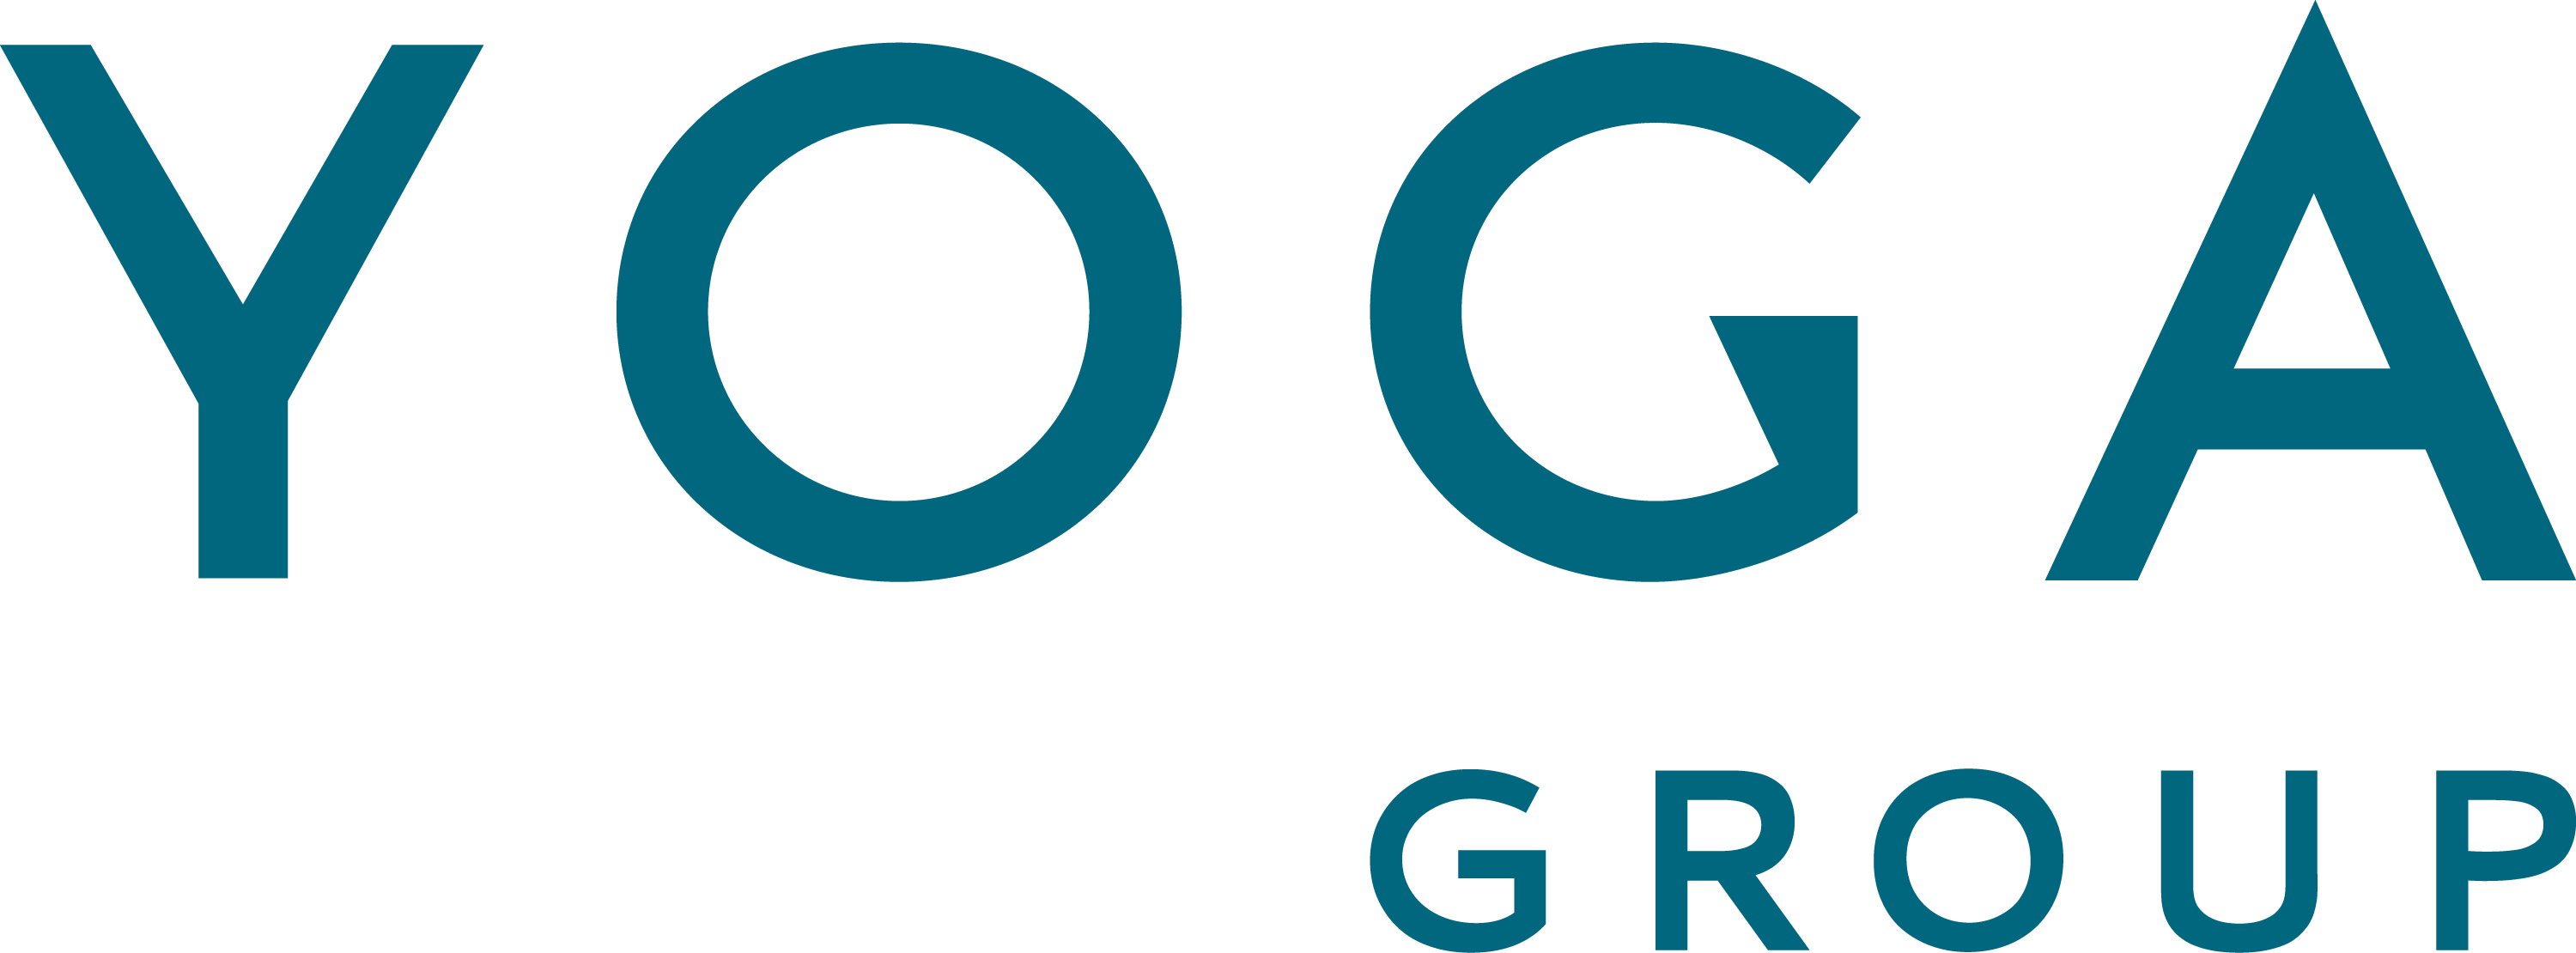 yogagroup